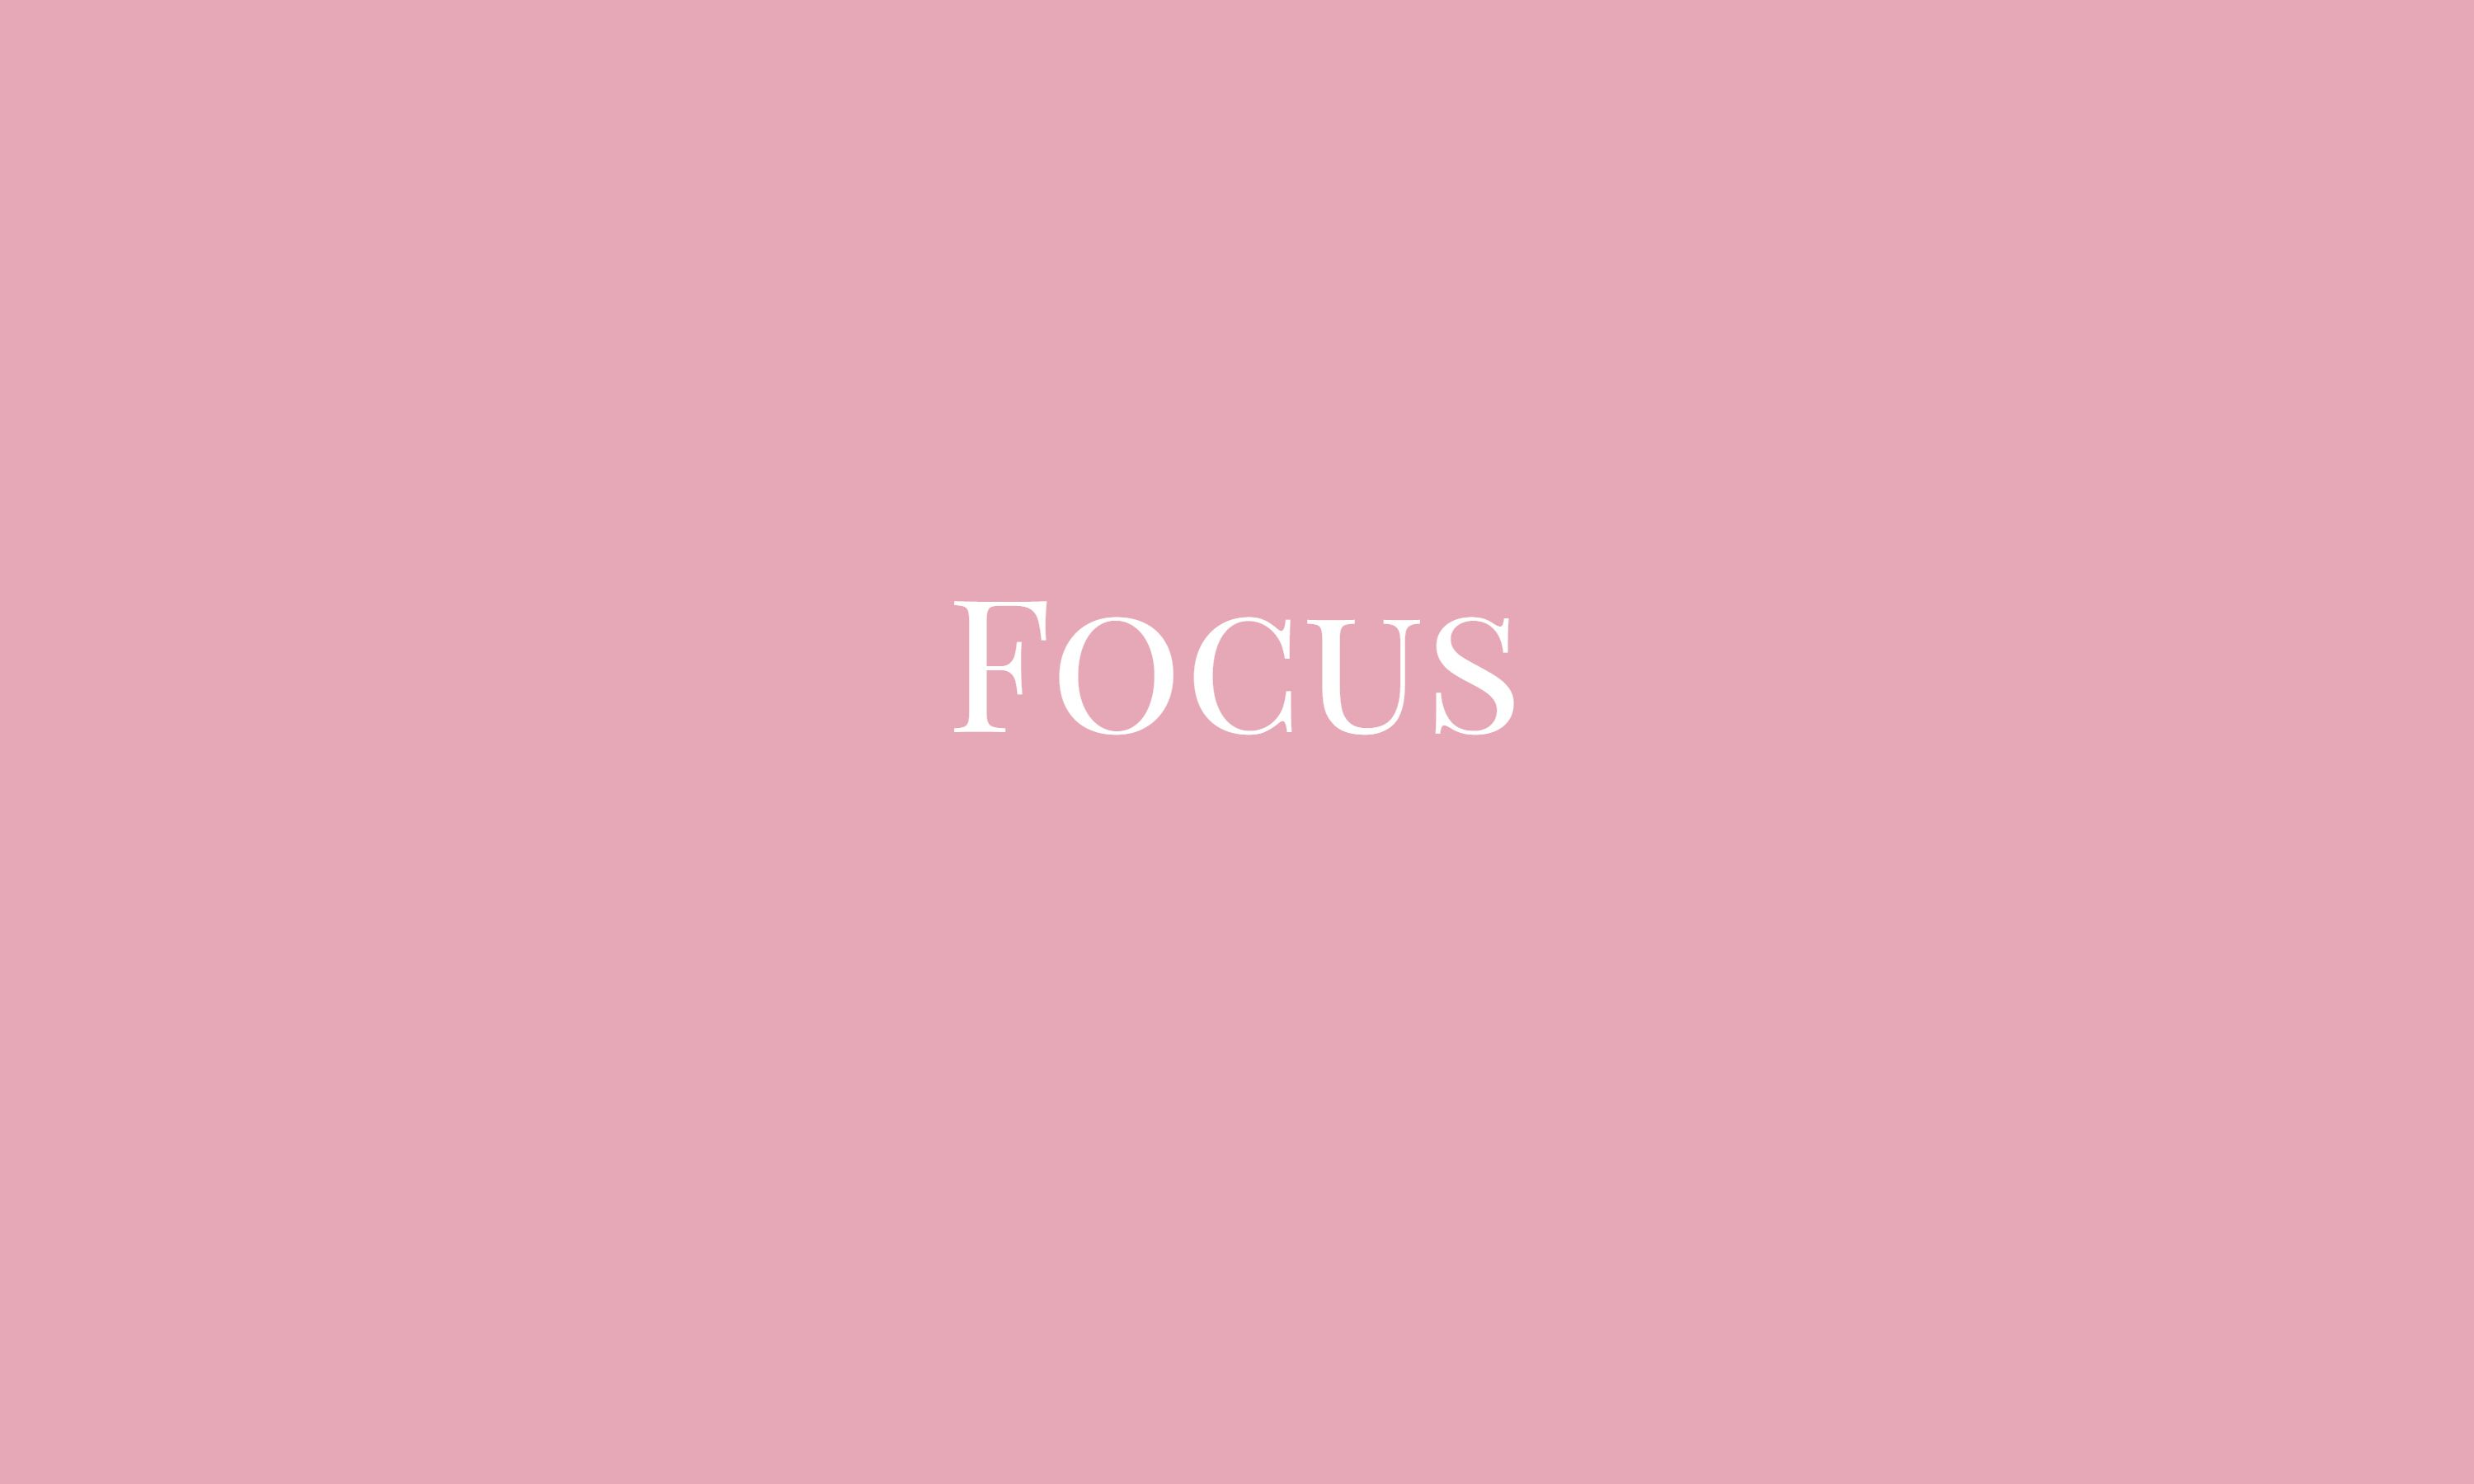 Pink Focus Desktop Wallpaper Background Aesthetic Desktop Wallpaper Desktop Wallpapers Backgrounds Aesthetic Wallpapers